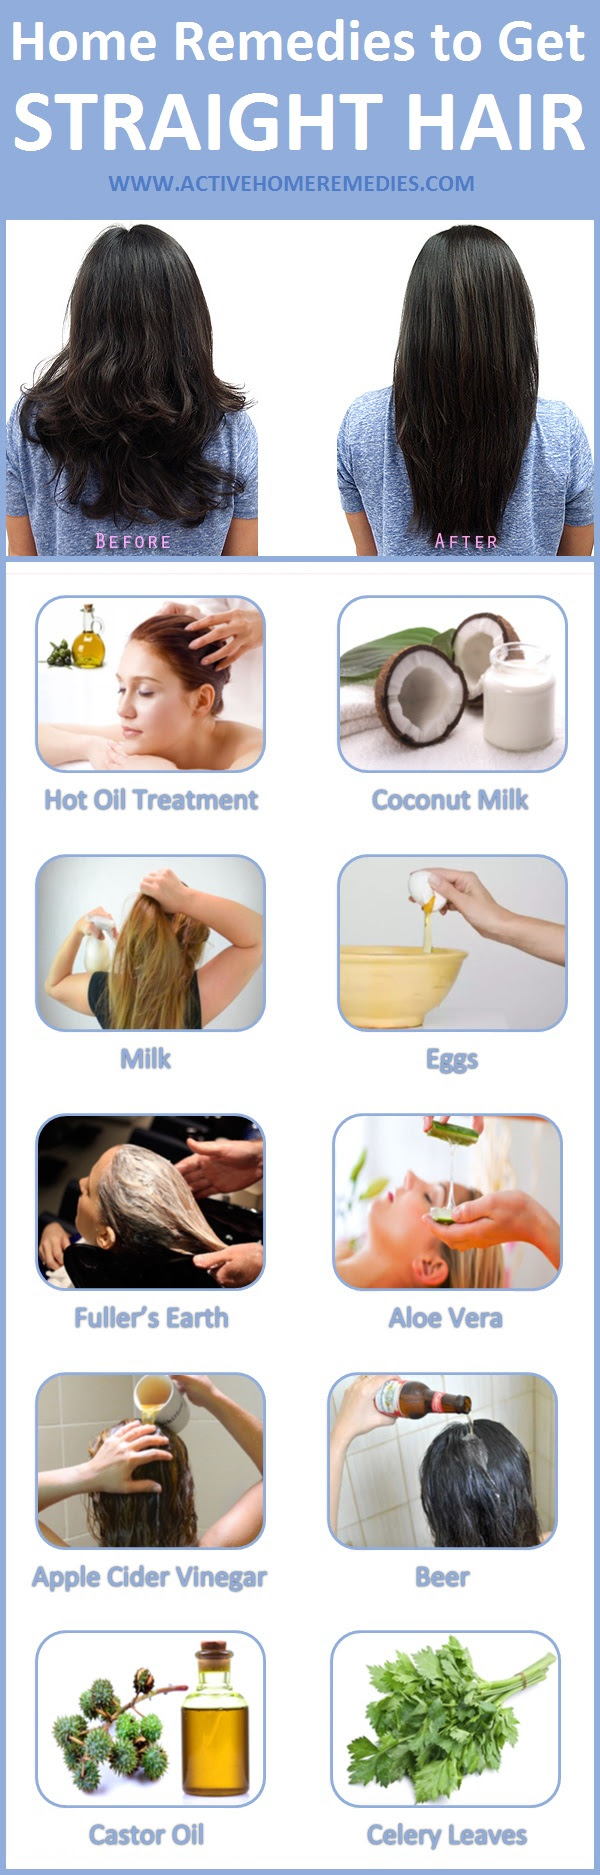 home remedies to get straight hair infographic